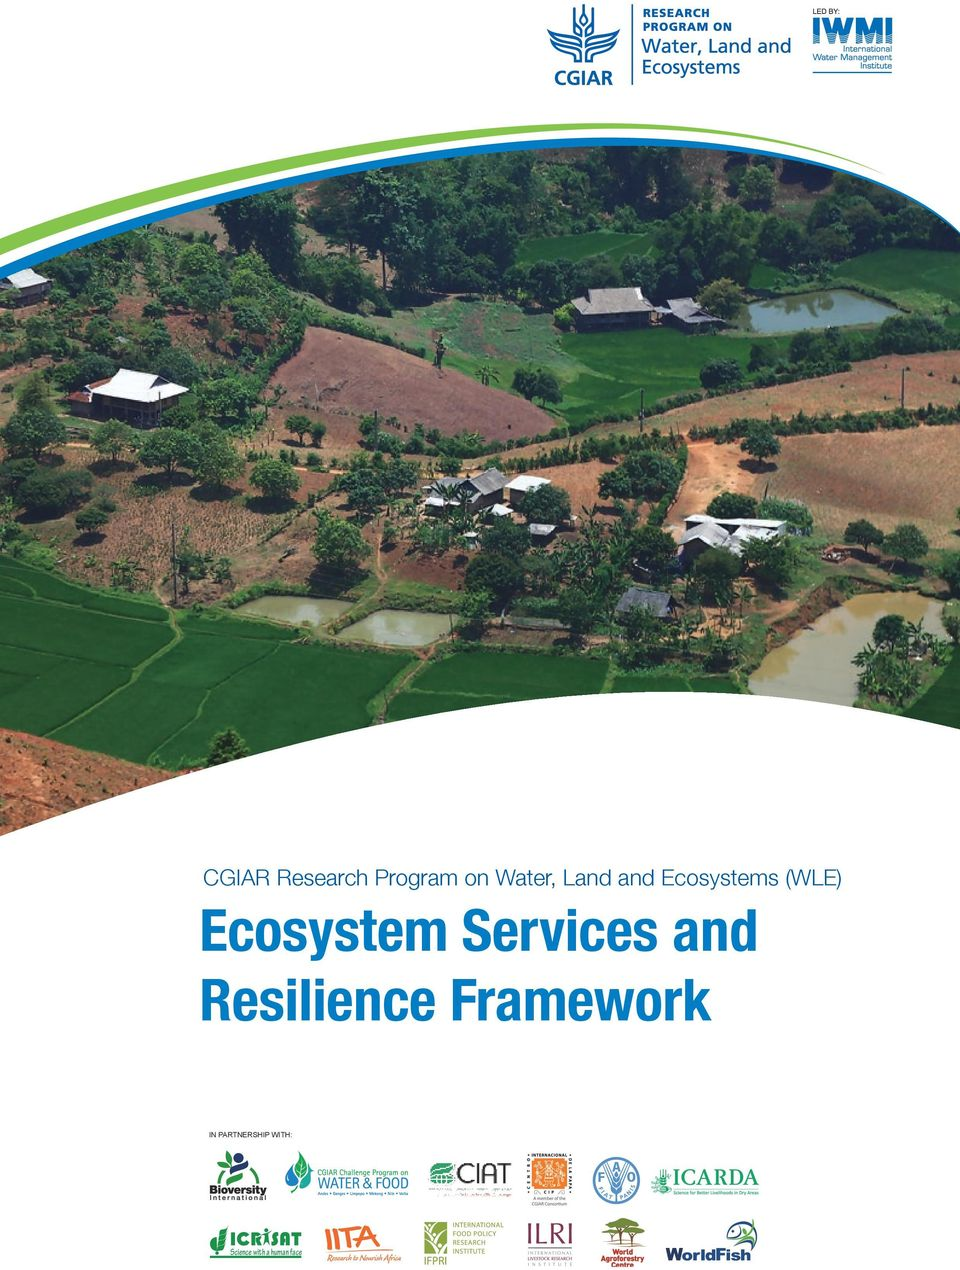 Services and Resilience Framework IN